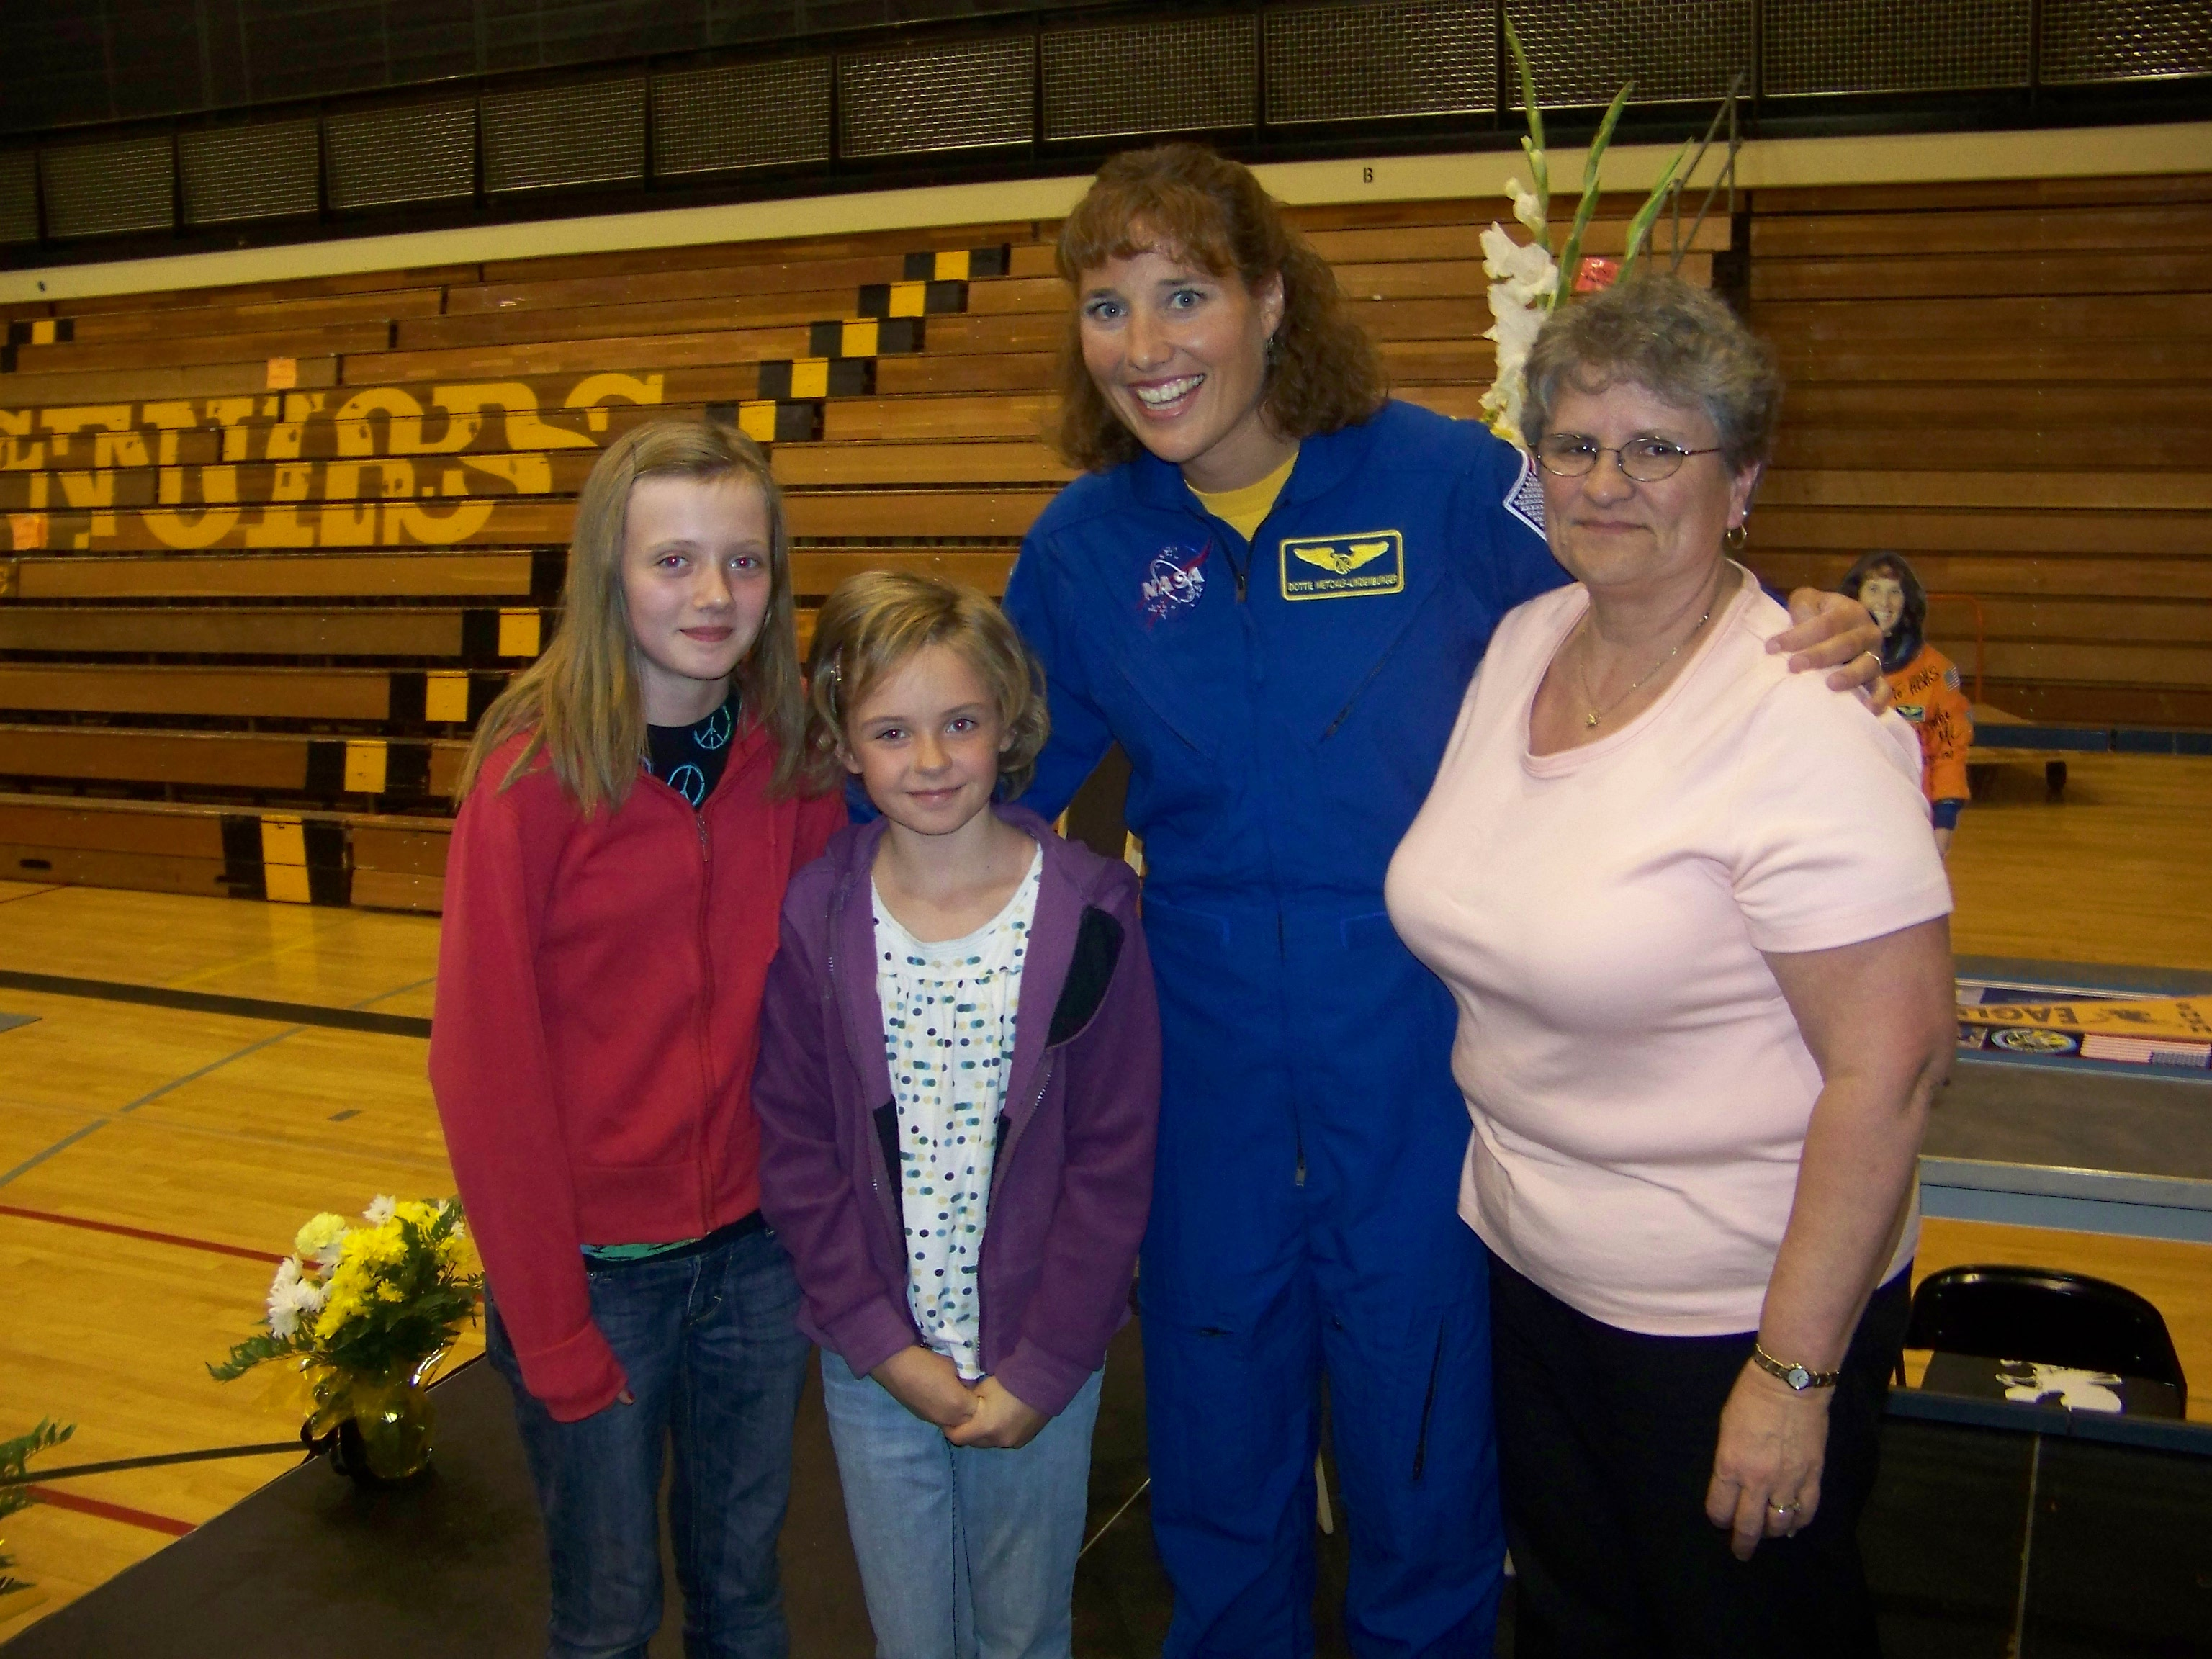 Claire, Veda, Dottie the Astronaut & Grandma Betty